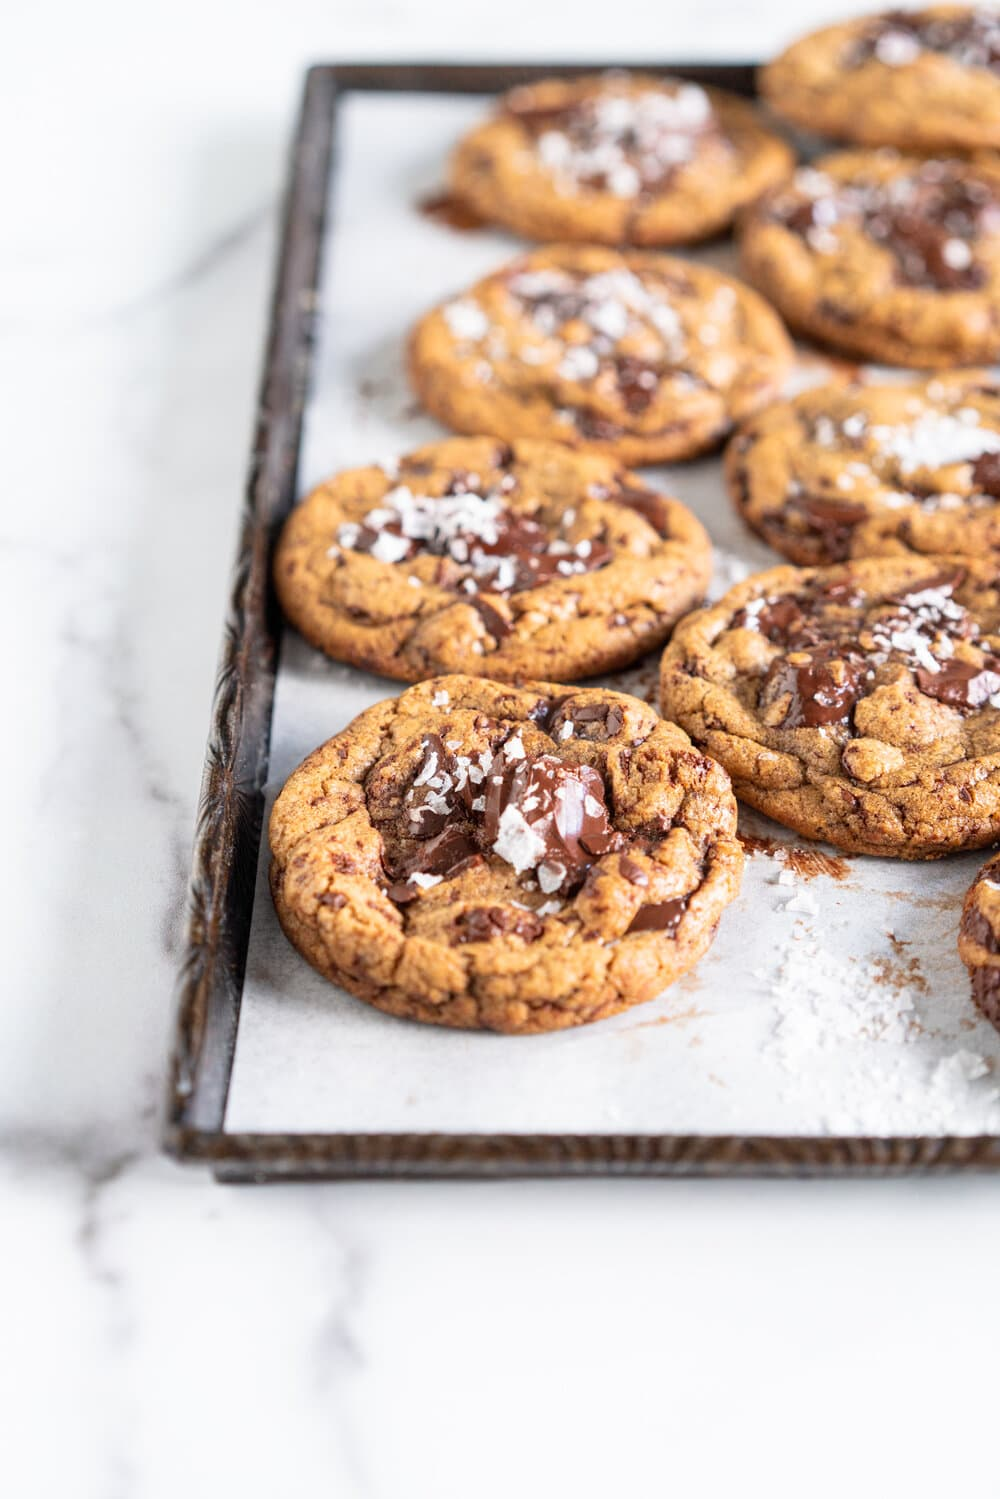 Brown Butter Spelt Chocolate Chip Cookies - these are a variation on the classic chocolate chip cookie. Brown butter provides depth of flavour along with spelt flour. The cookies are easy to make with a short chill time and are the perfect way to start baking using alternative grains such as spelt flour.